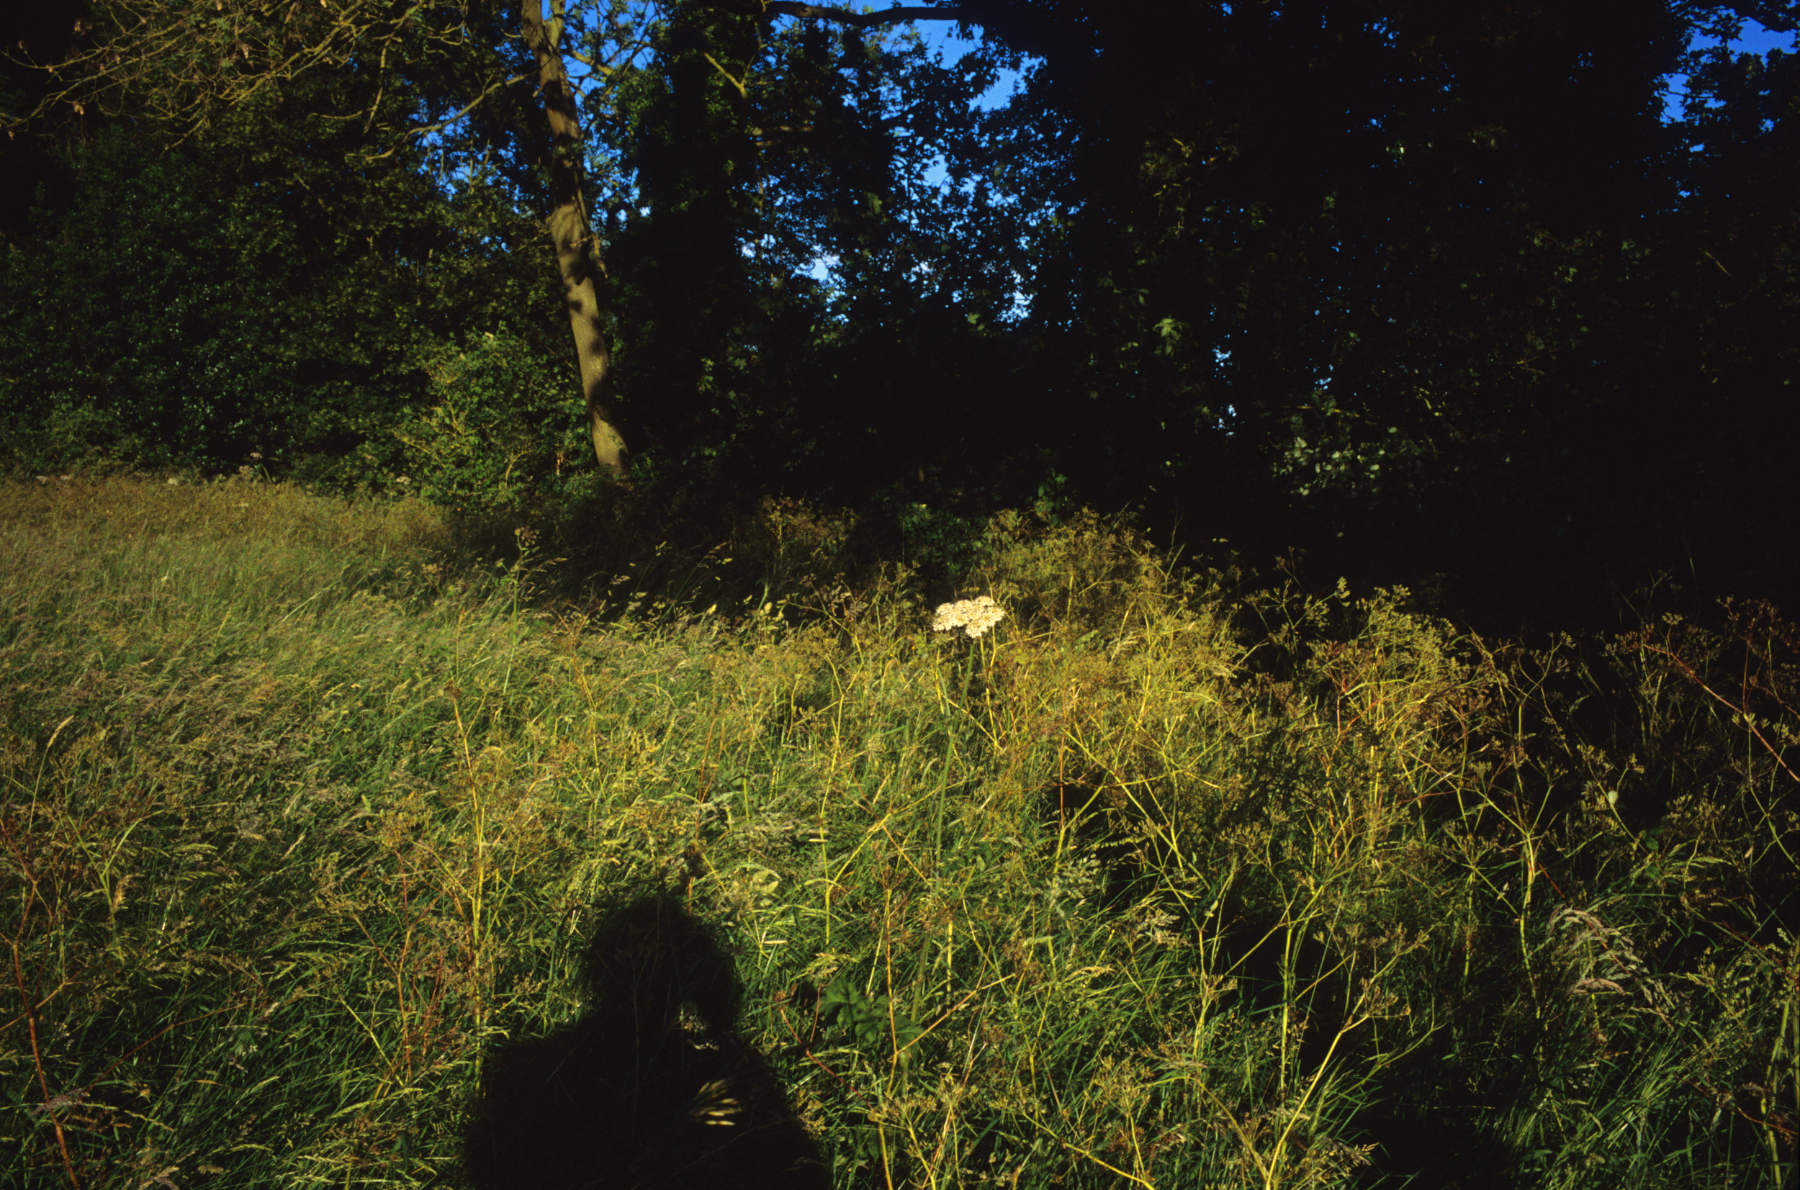 Shadow, Cowpasture Lane, Suffolk, 2014; 28.5 x 42 inches, Edn.of 3; 22 x 32 inches, Edn.of 5